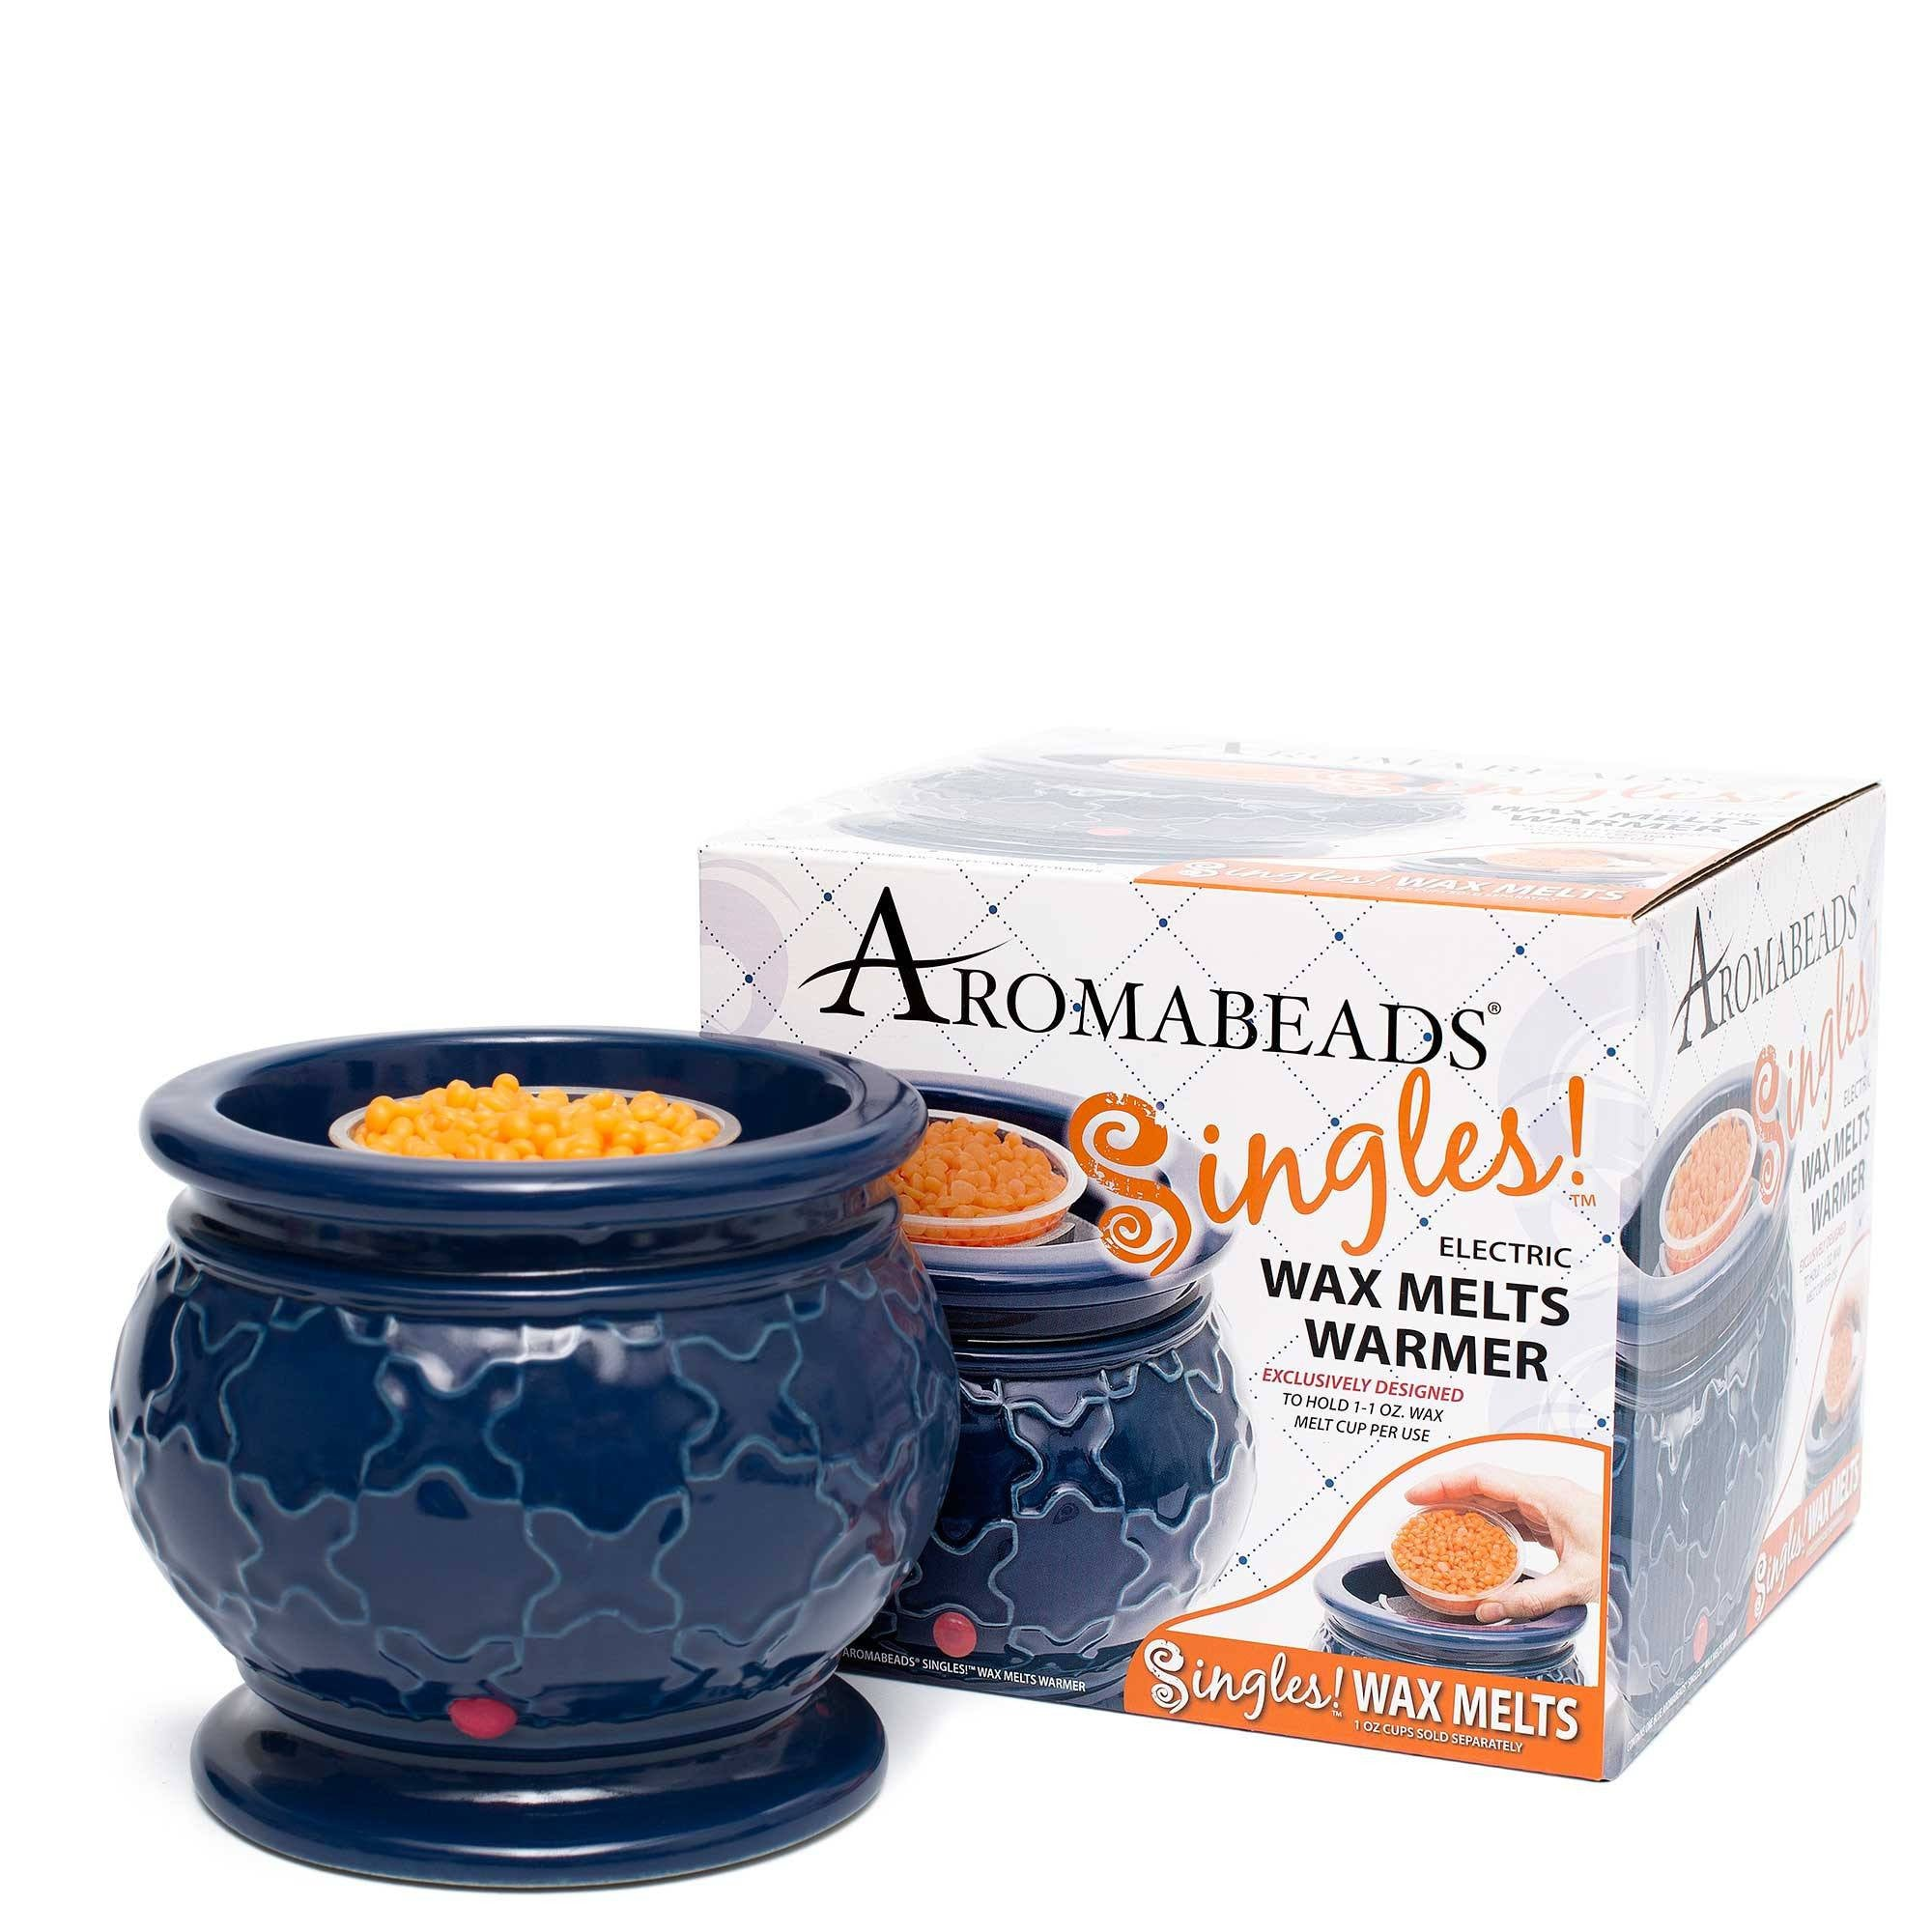 Aromabeads Singles Warm Kitchen Spice Scented Wax Melts - Candlemart.com - 3